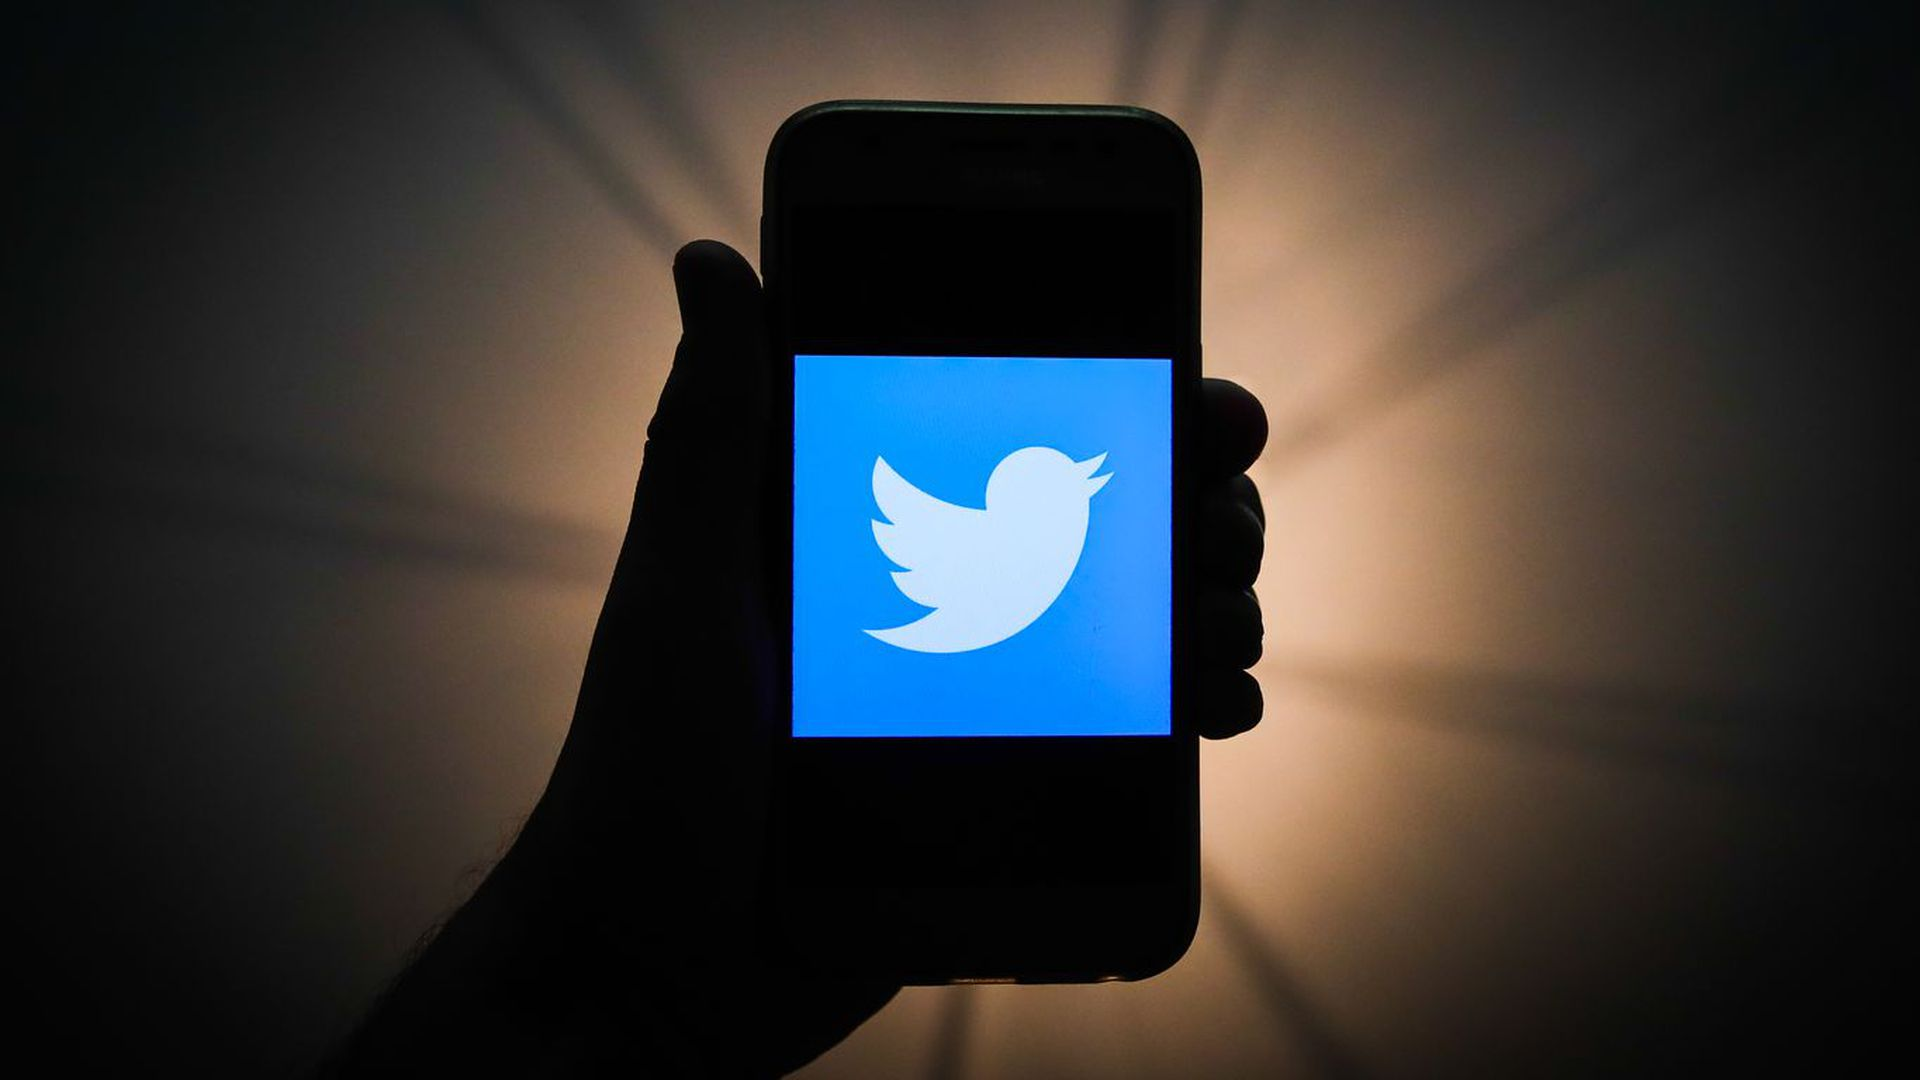 Twitter will make it easier to identify political candidates